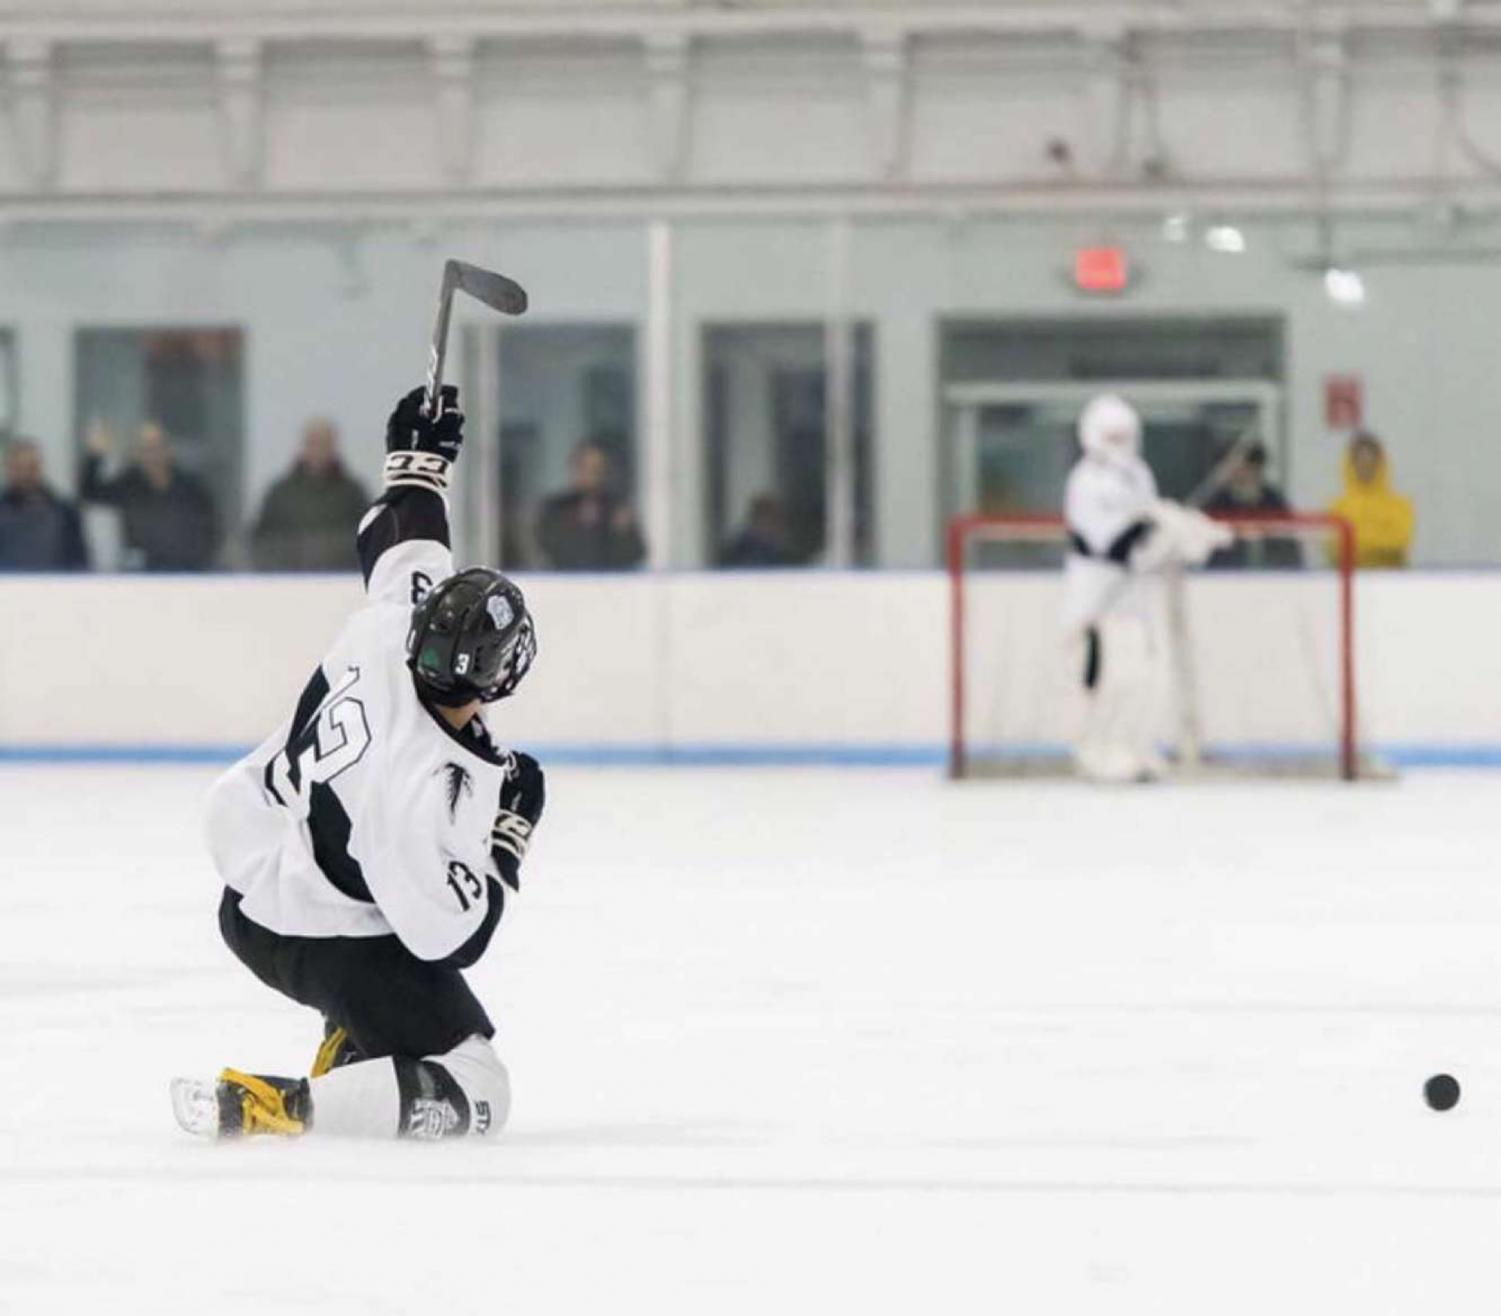 Cambridge Boys Hockey Loses to Lowell in Division 3 North Sectional Finals